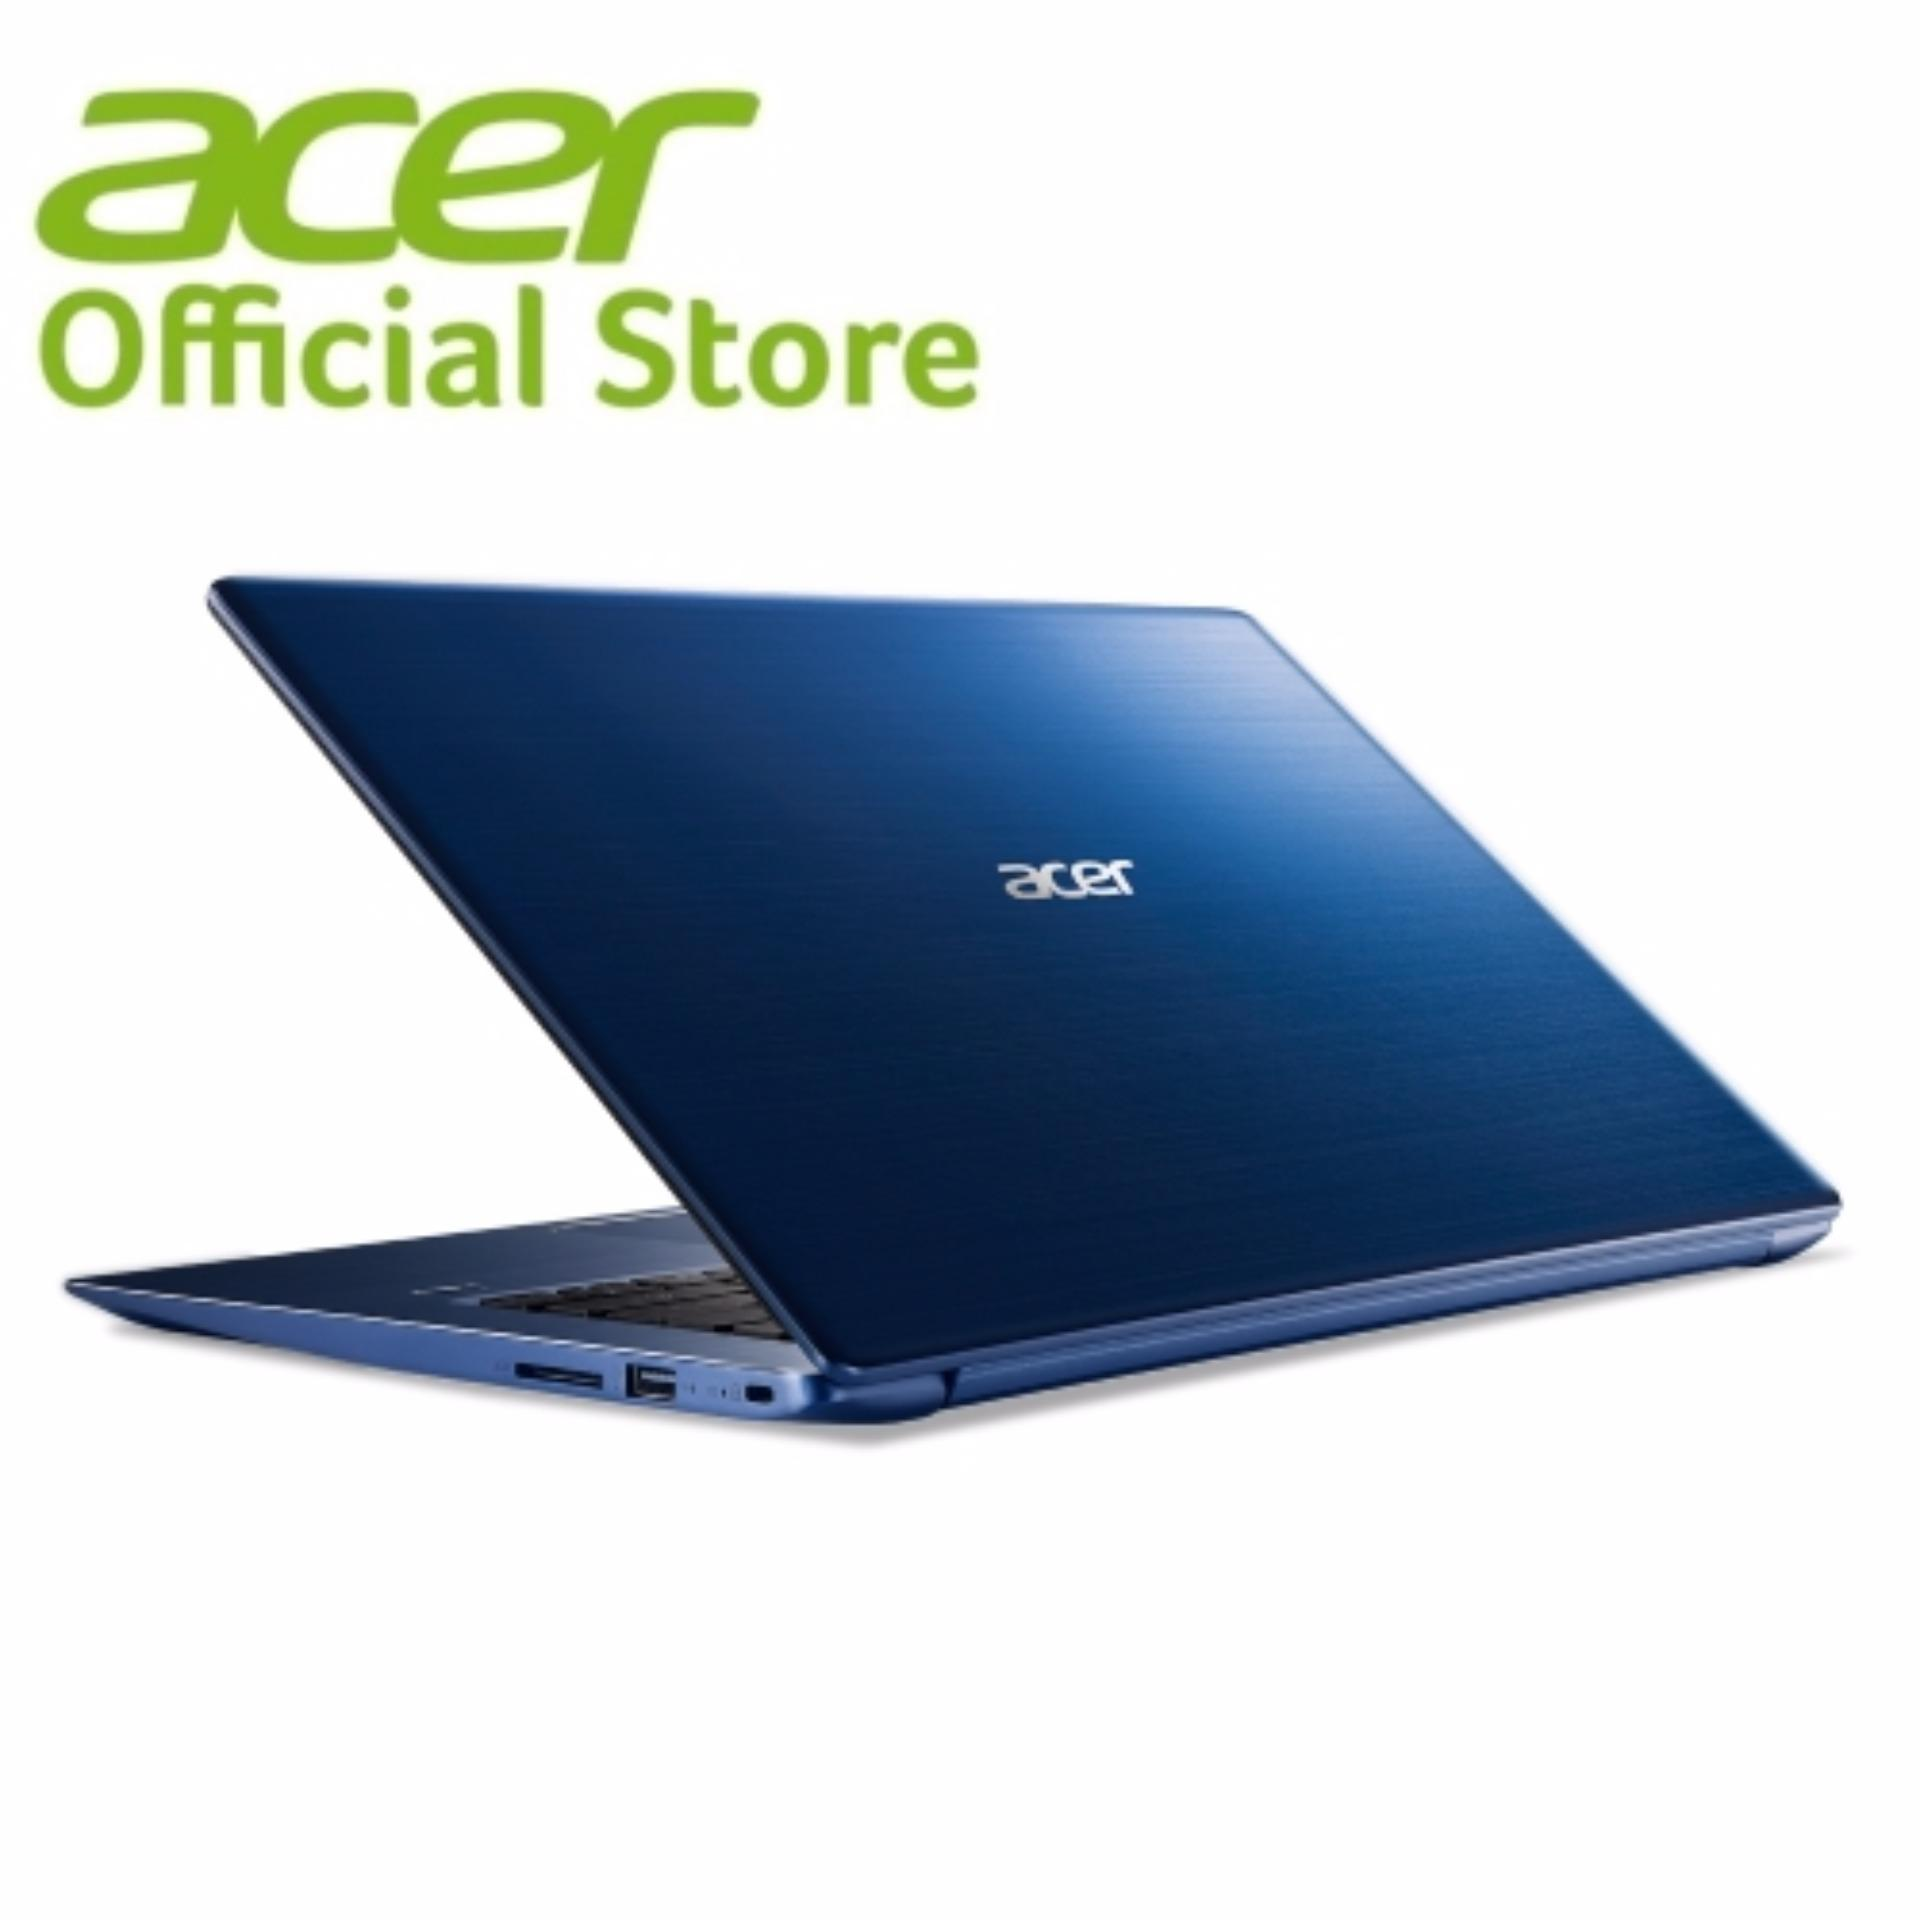 Acer Swift 3 SF315-51G-847D 15.6″ Thin and Light Laptop with 8th Generation i7 Intel Processor